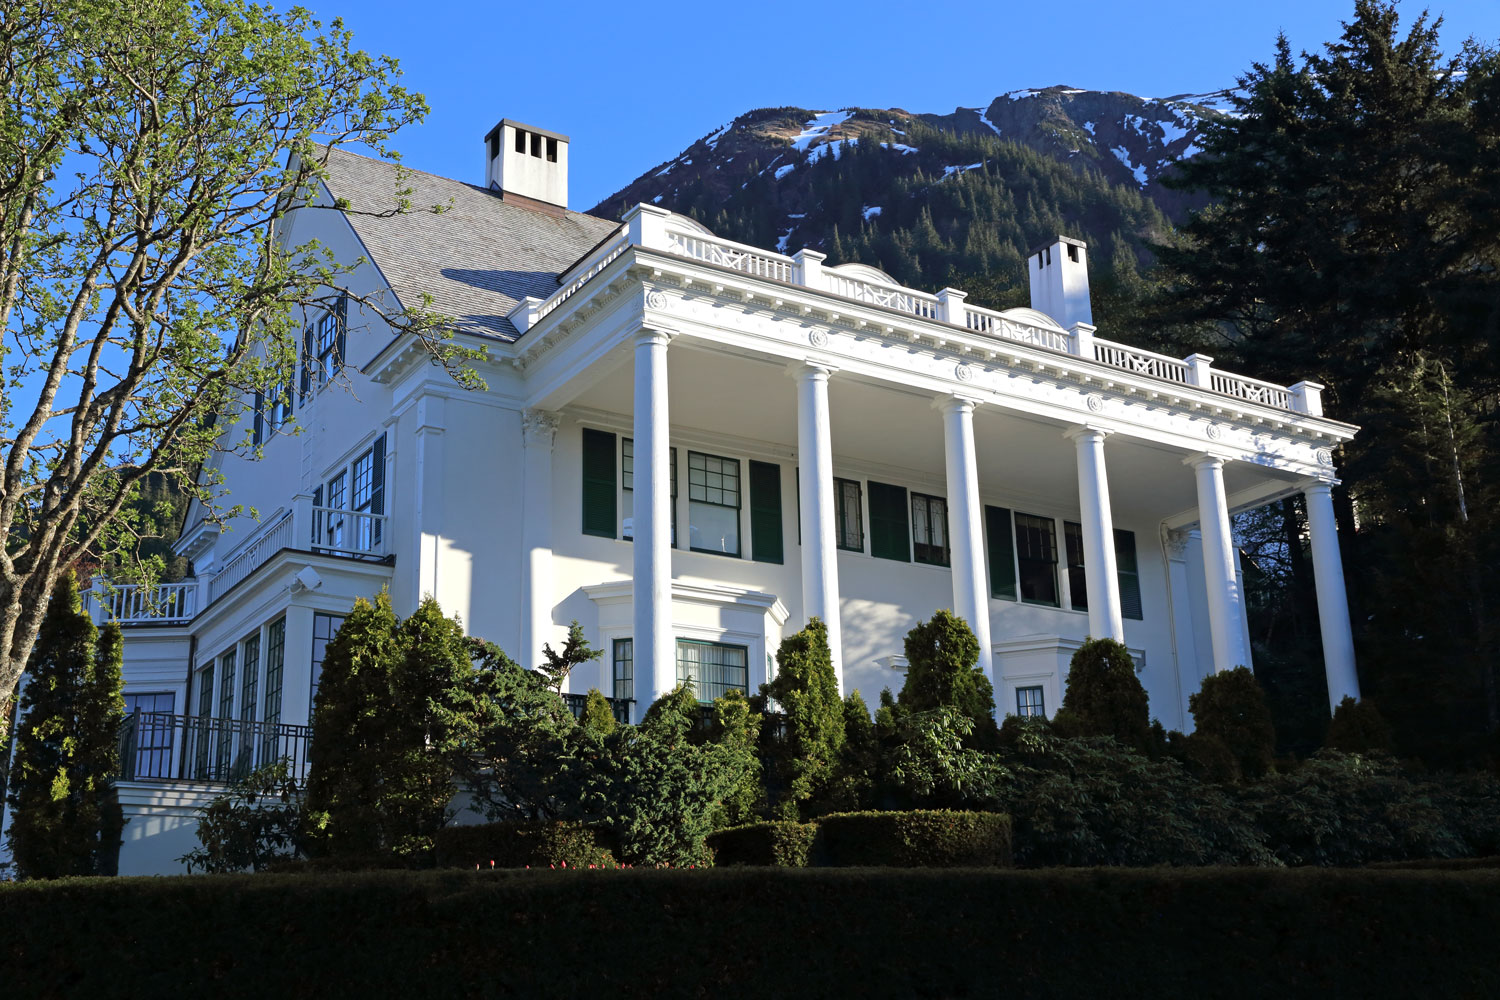 The Governor's Mansion in Juneau, Alaska